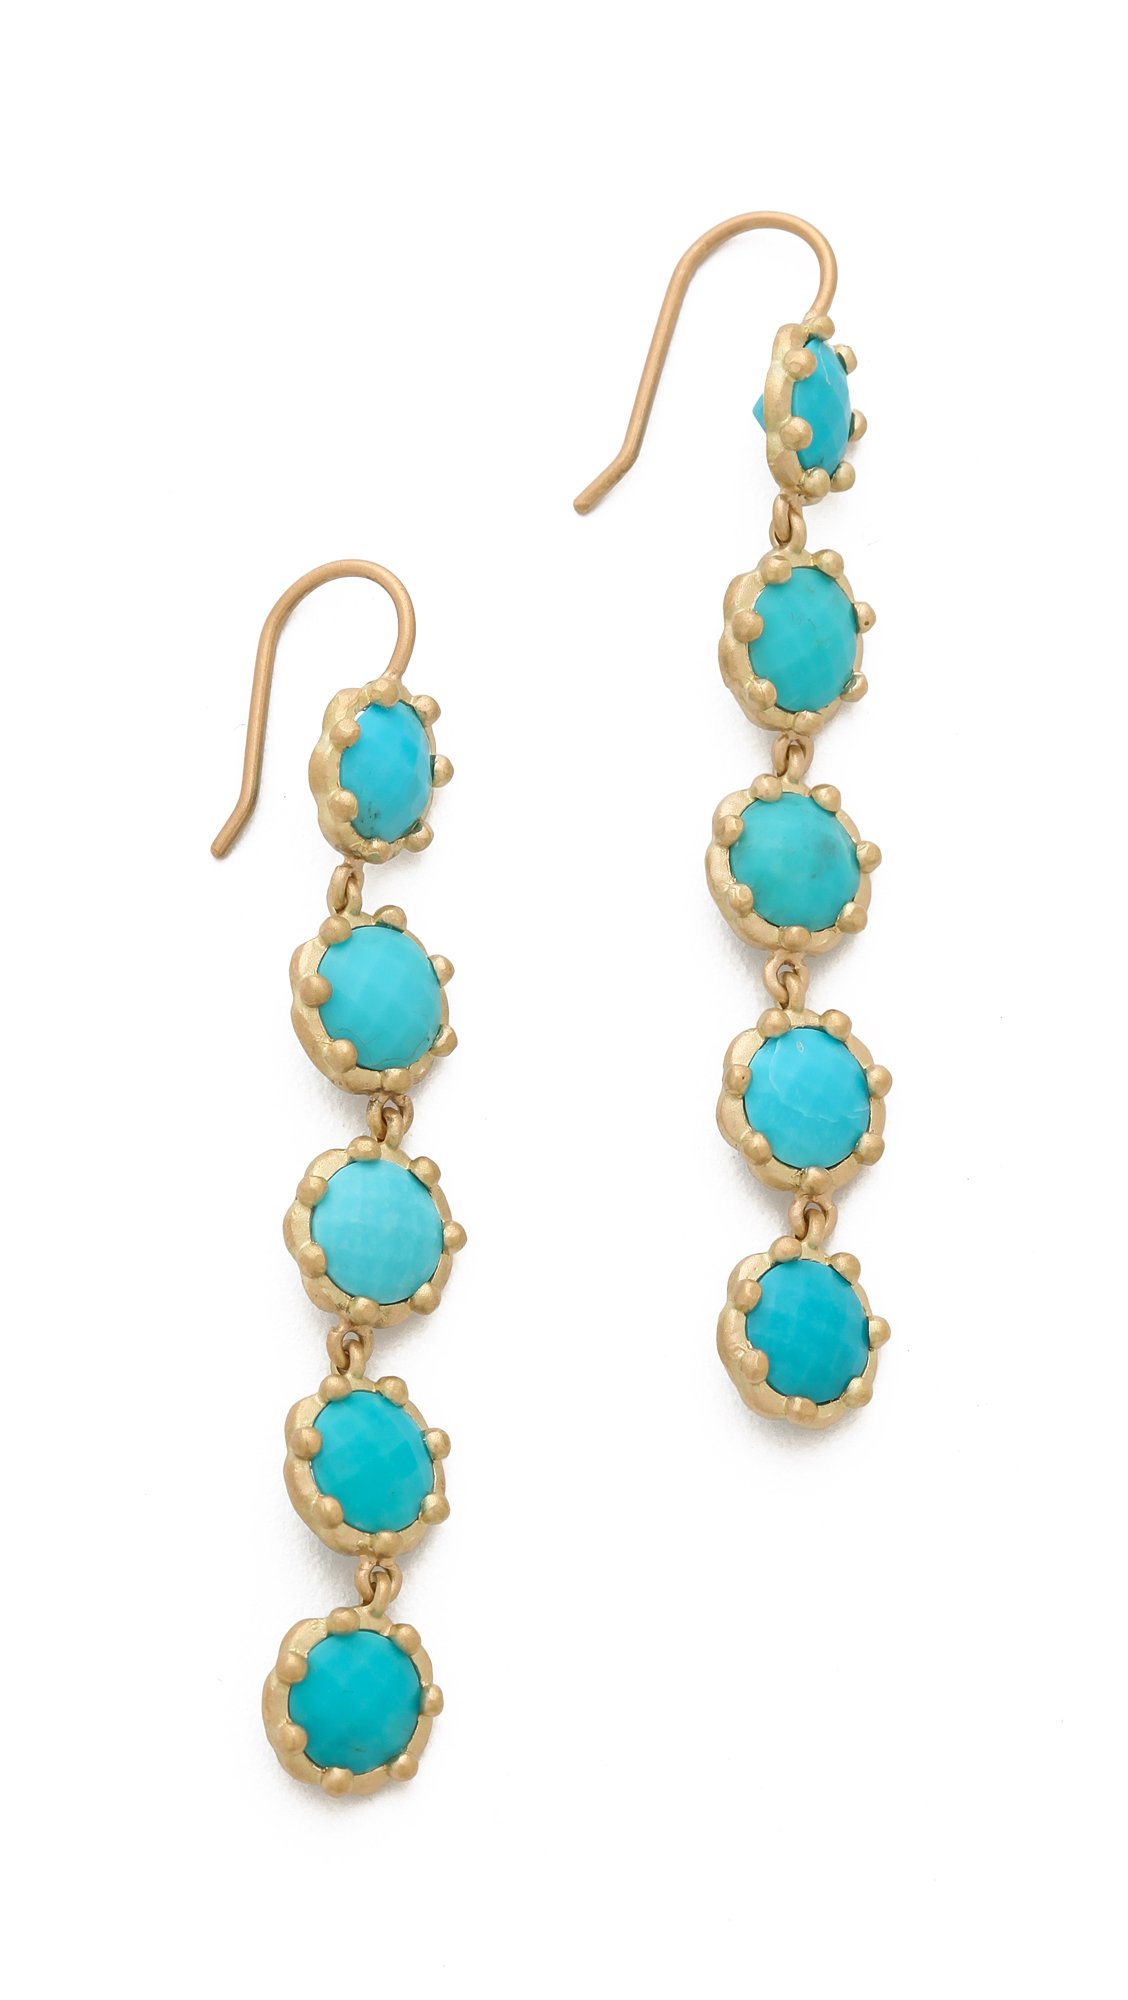 jamie wolf tiered turquoise earrings gold in metallic lyst. Black Bedroom Furniture Sets. Home Design Ideas